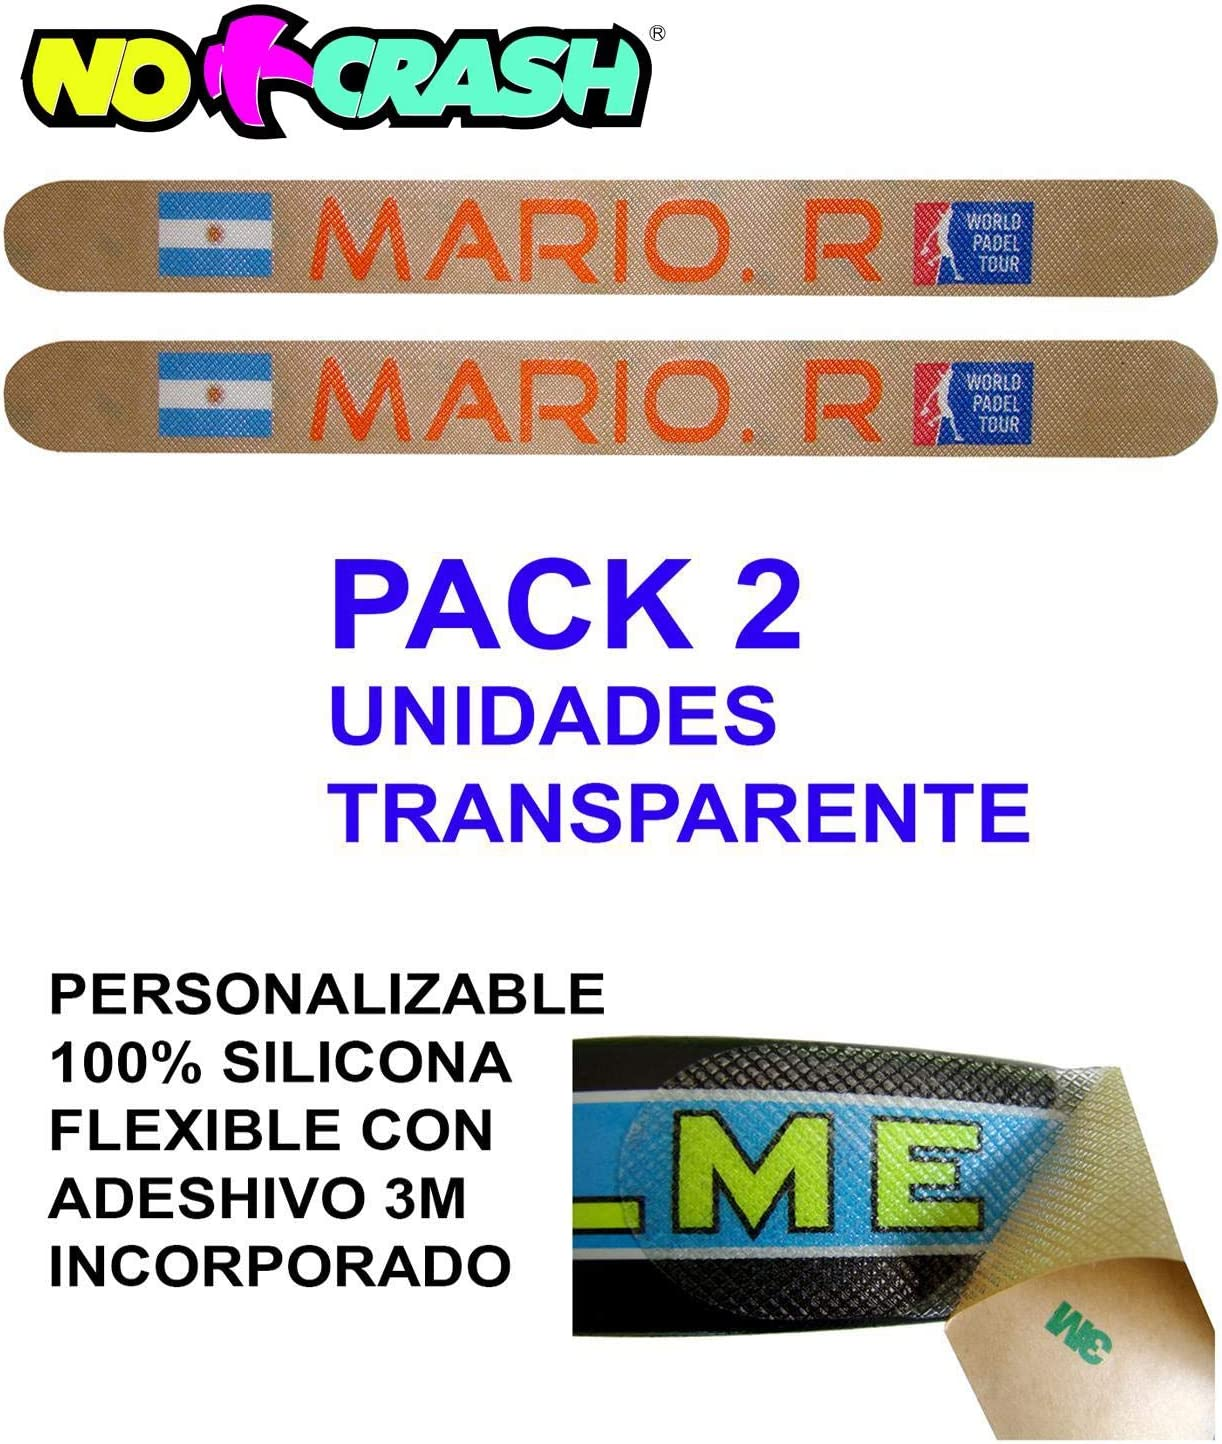 No+Crash Protector 100% Transparente Flexible Muy Resistente DE Silicona Pack 2 Unidades